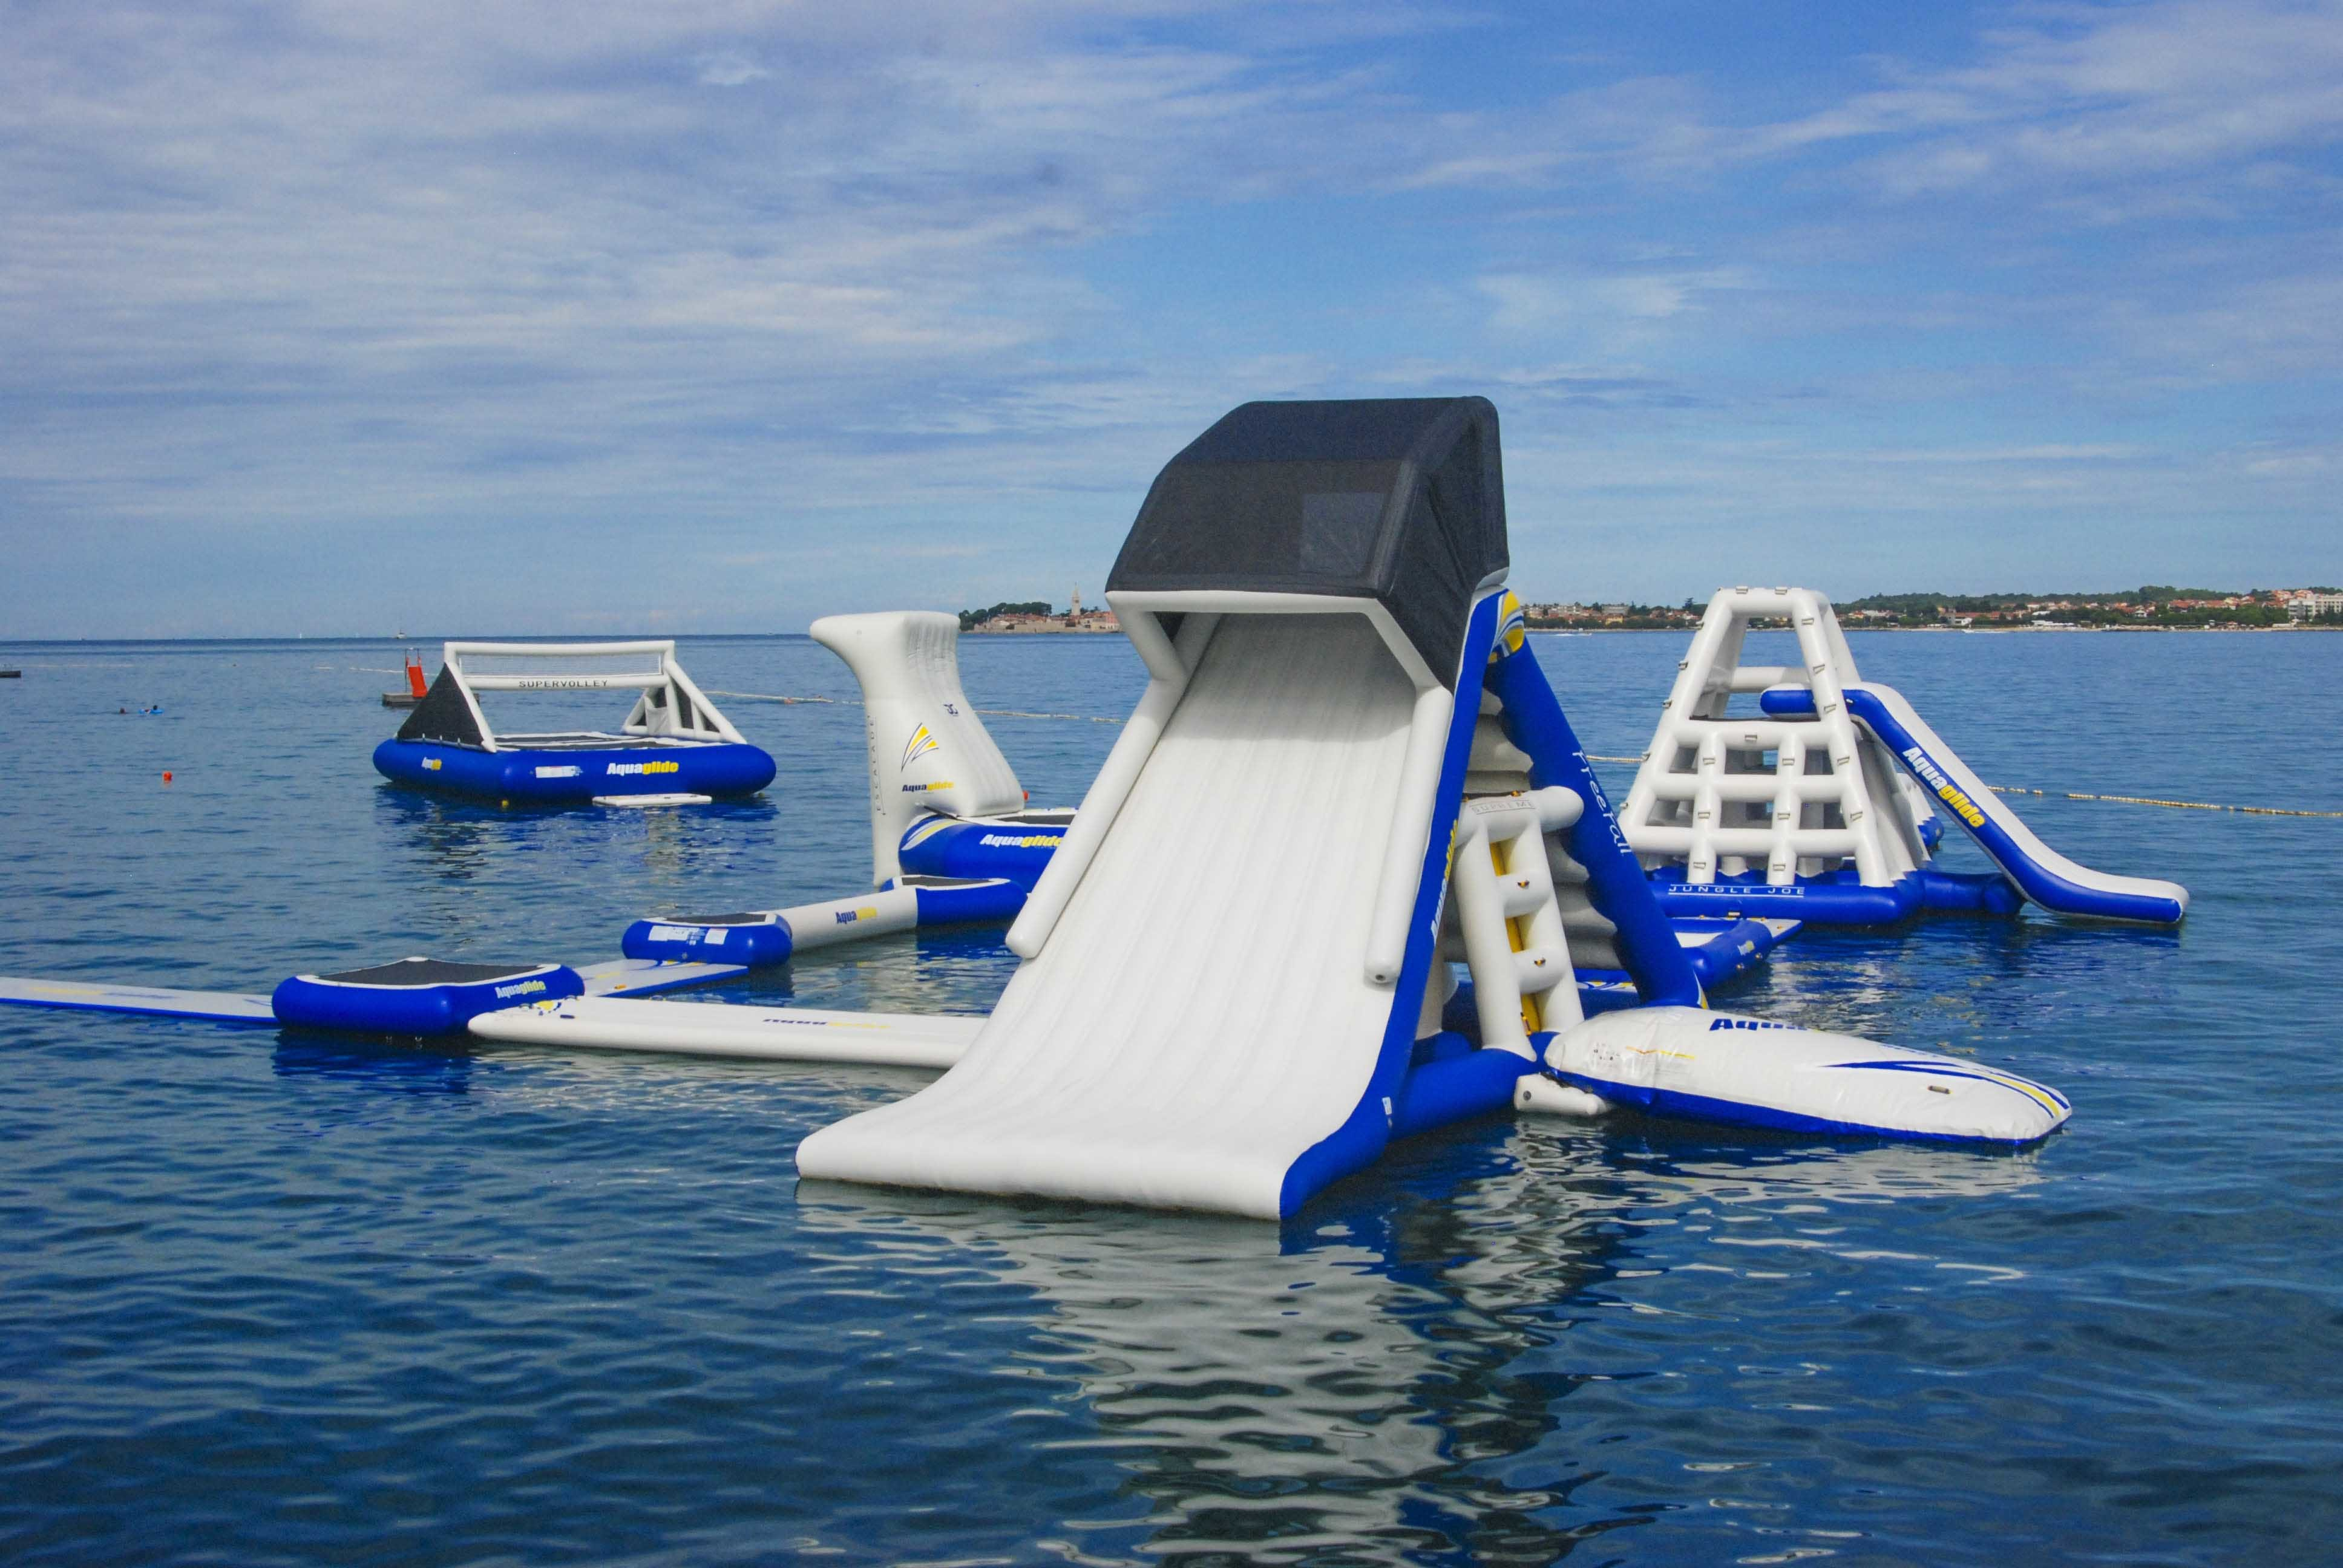 Yacht toys, aquapark including slide, obstacles and volleyball